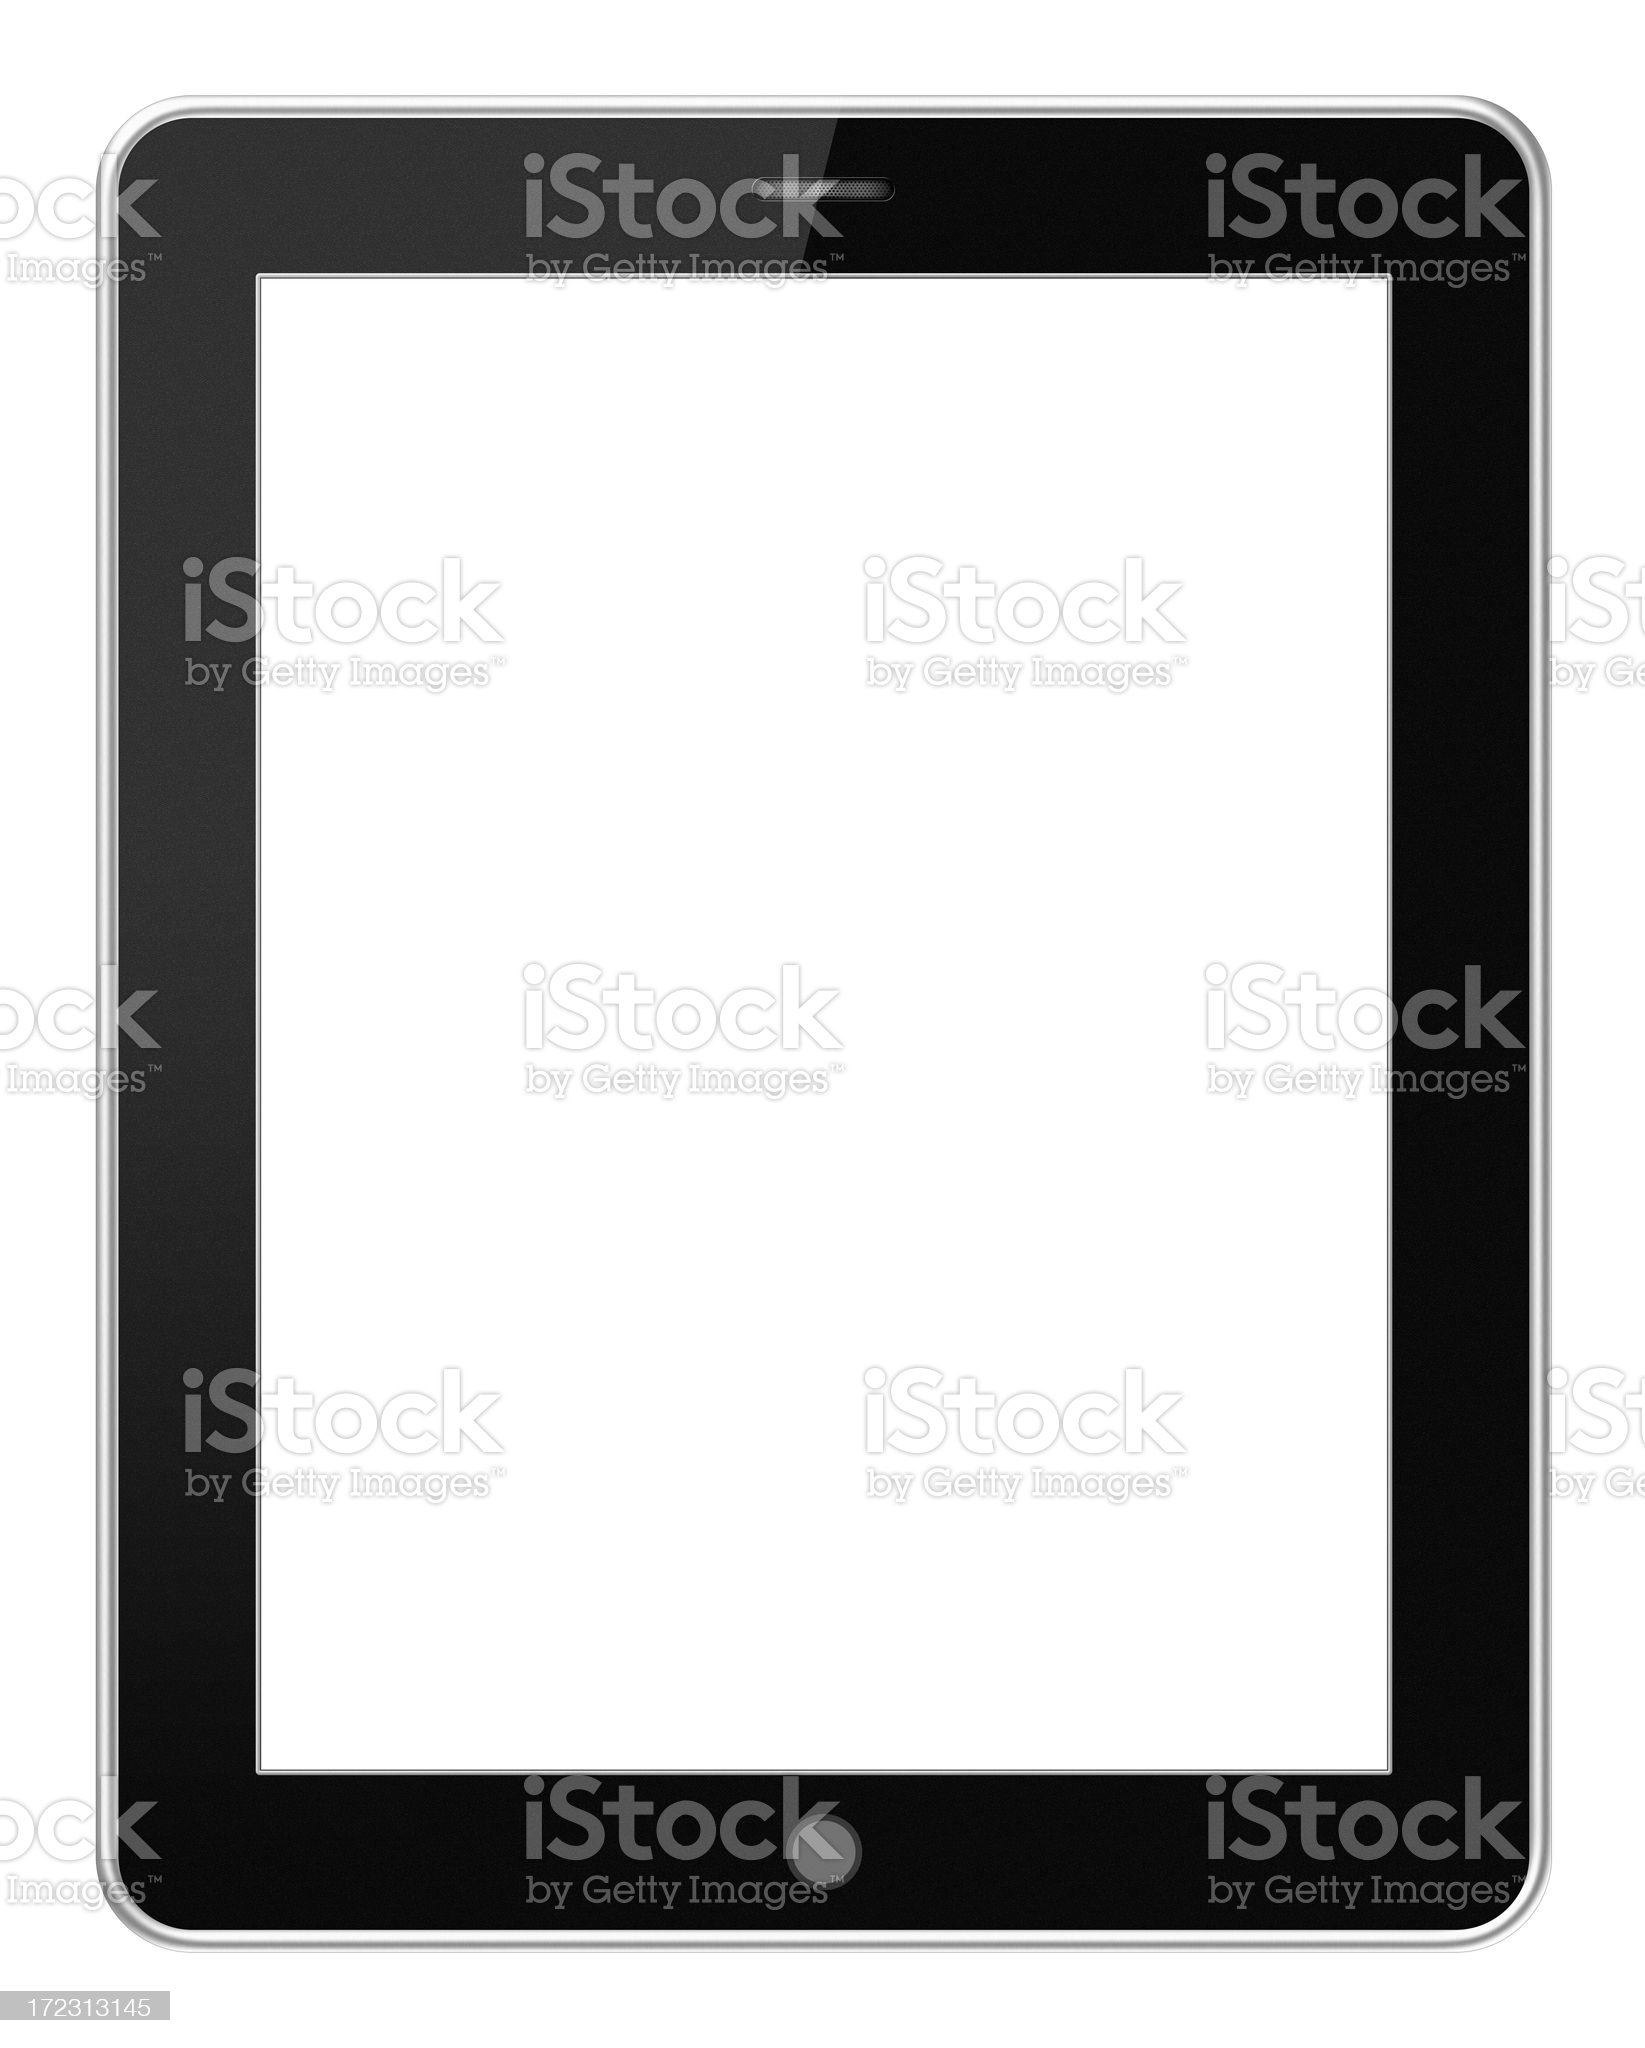 Digital Tablet PC (Clipping path) isolated on white background royalty-free stock photo